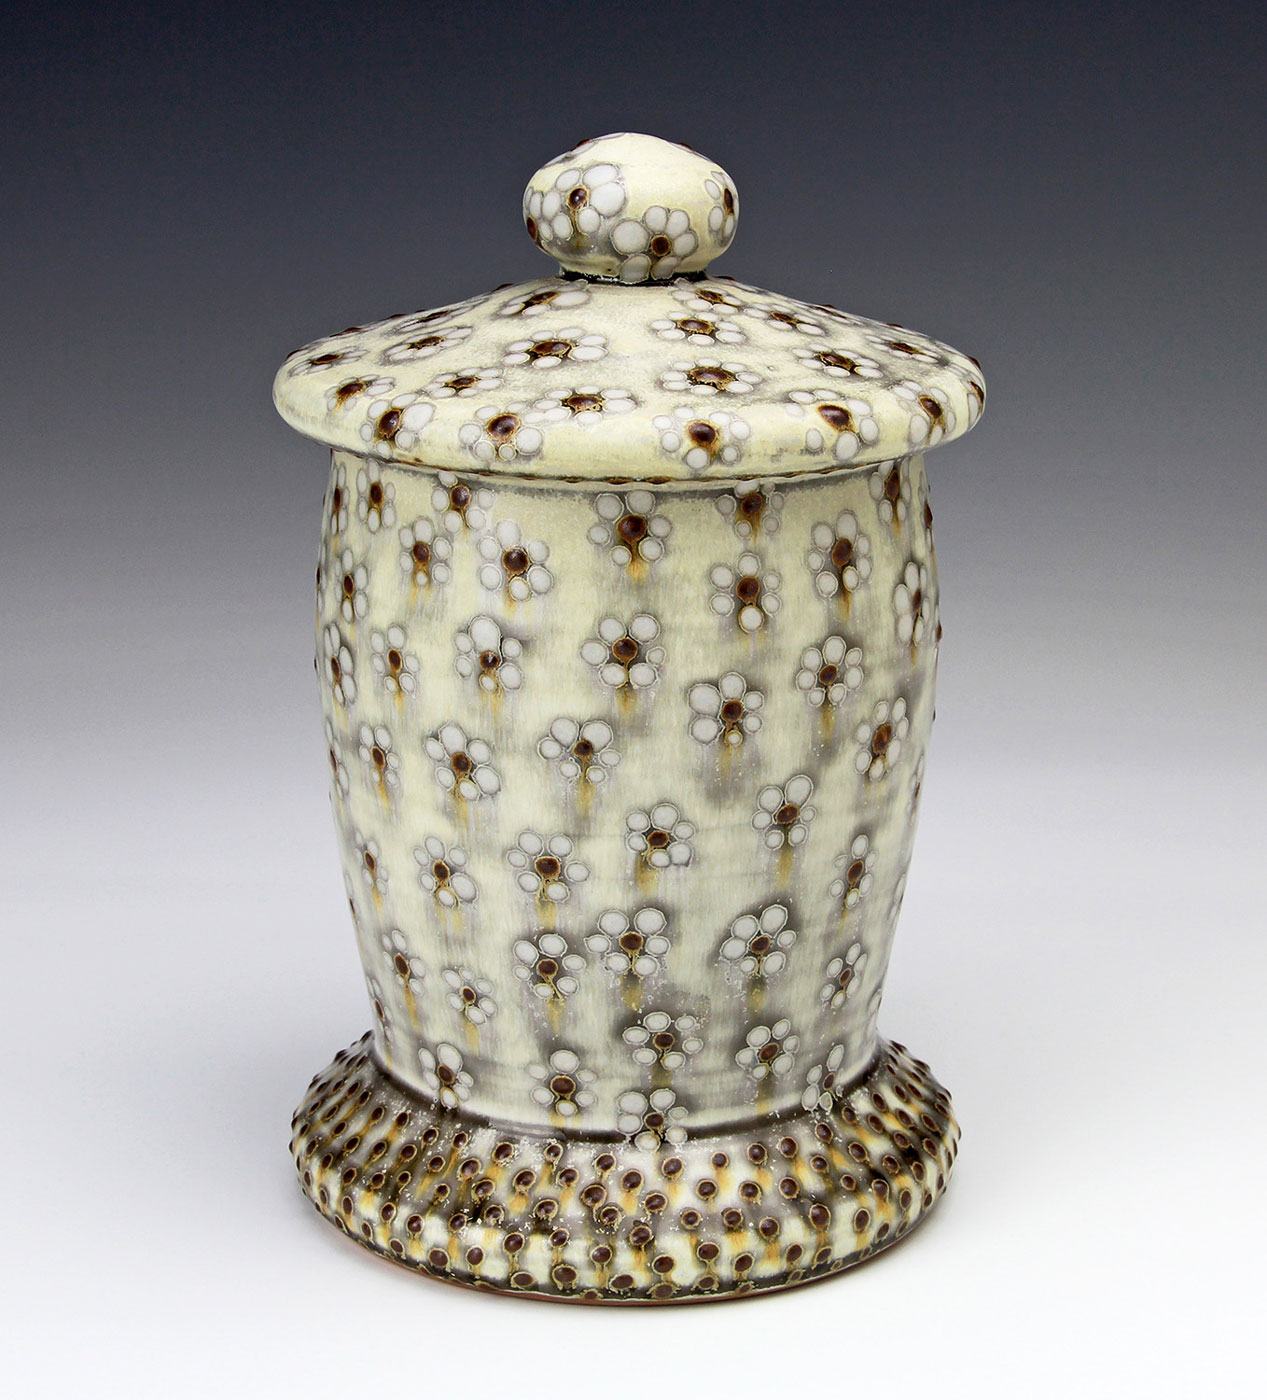 Covered-Jar-contemporary-ceramics-Samantha-Henneke-Seagrove-Pottery.jpg